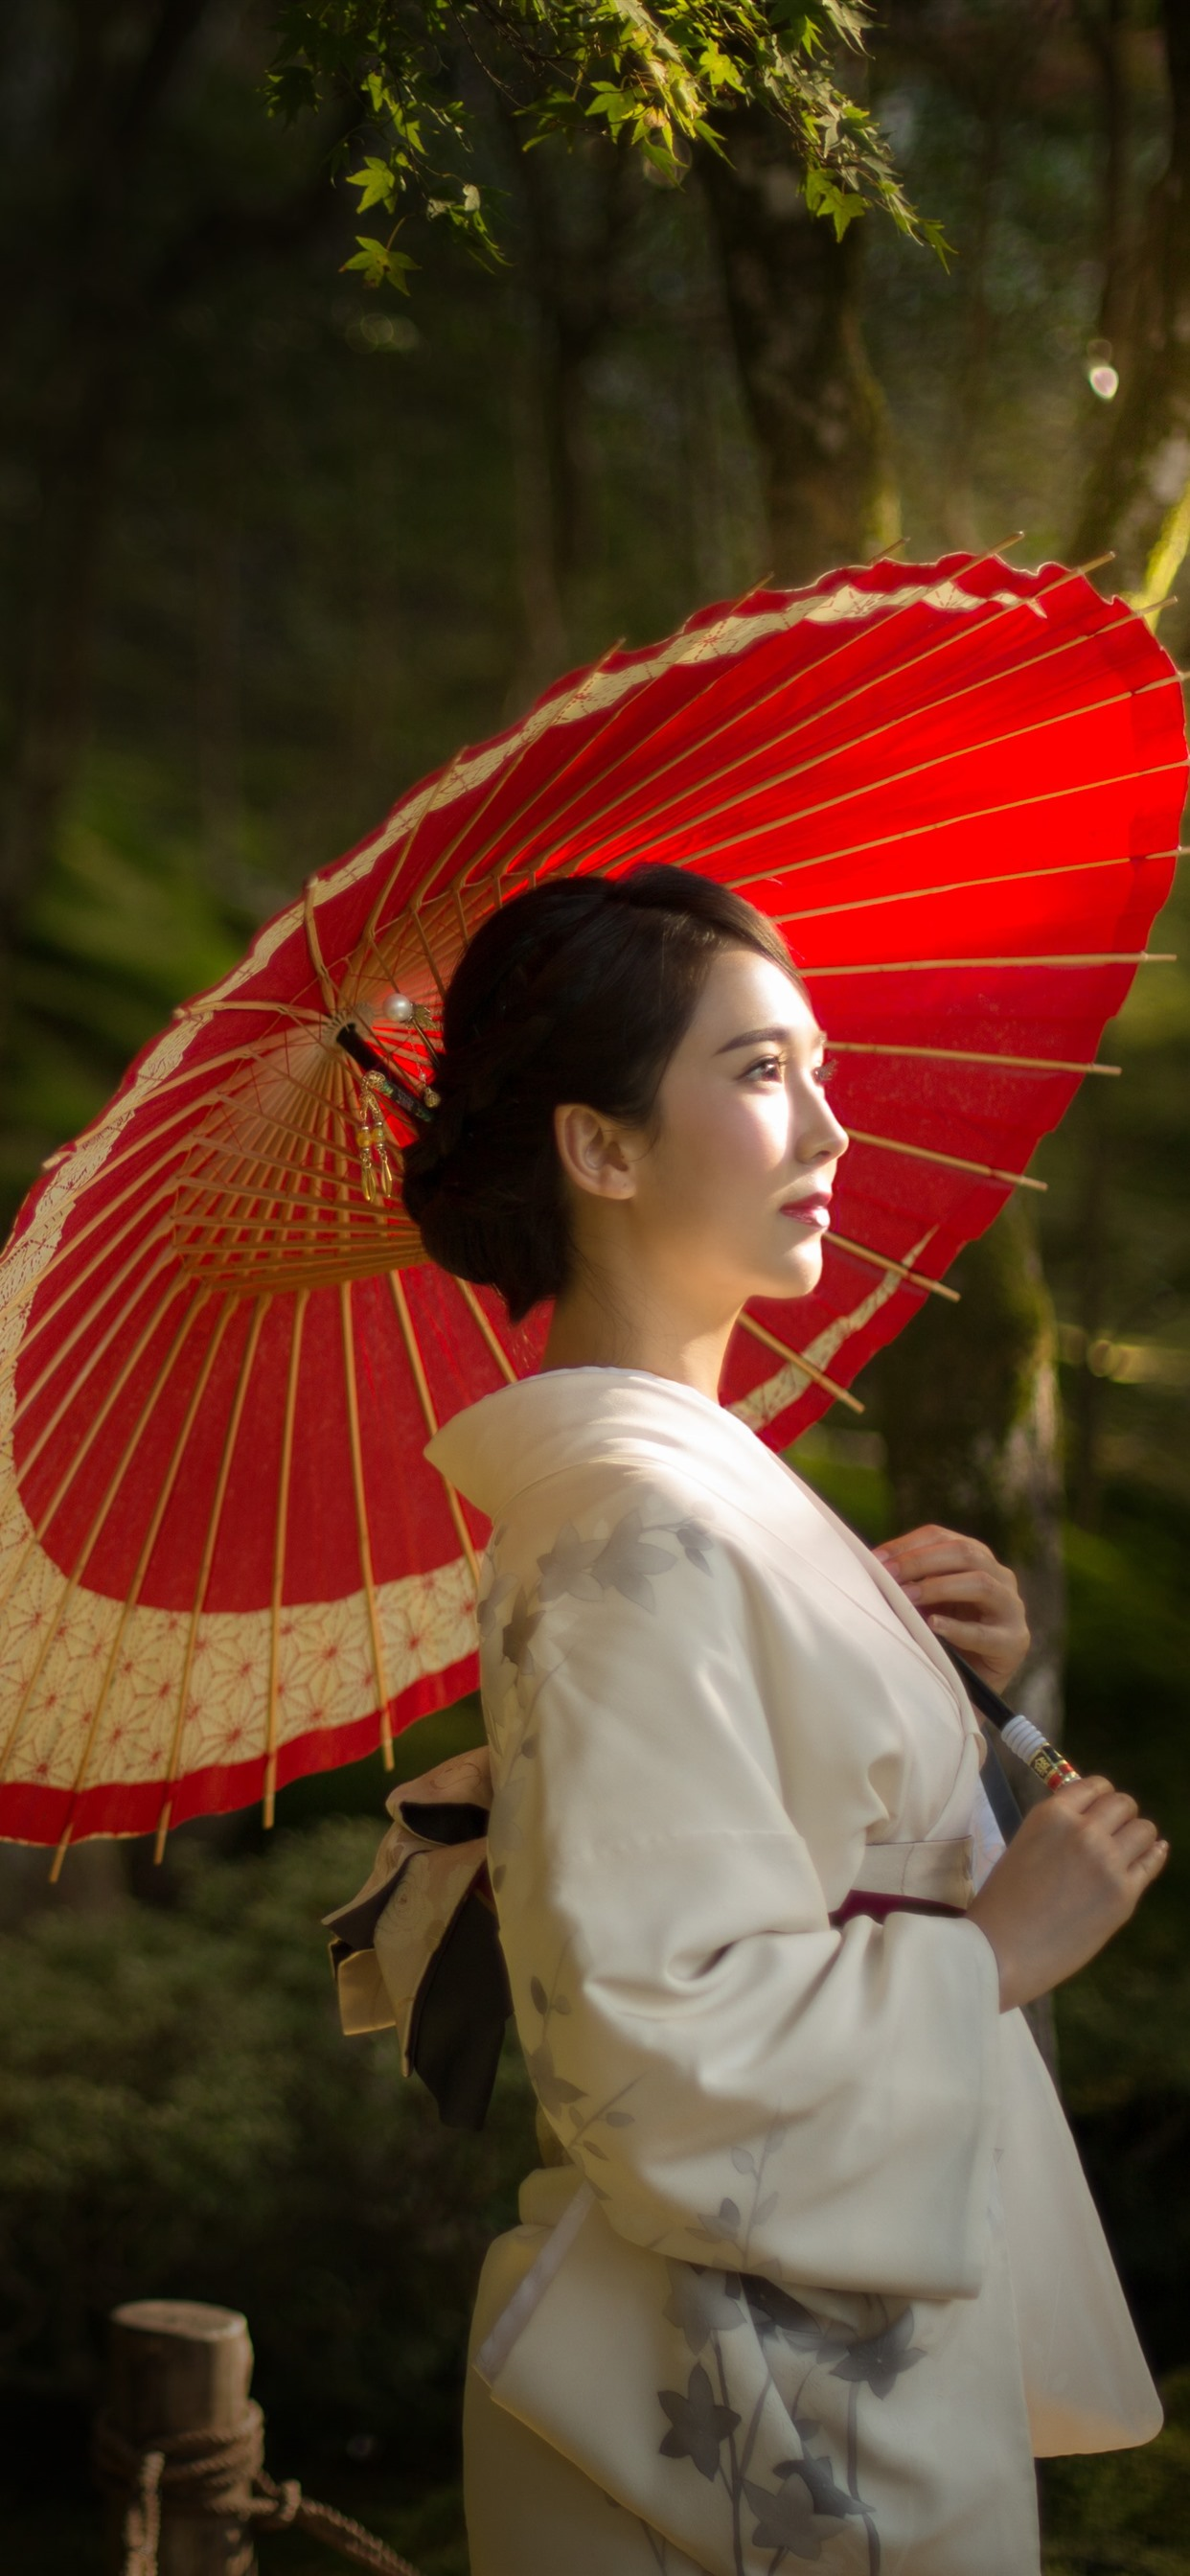 Japanese Girl Umbrella Trees 1242x2688 Iphone 11 Pro Xs Max Wallpaper Background Picture Image